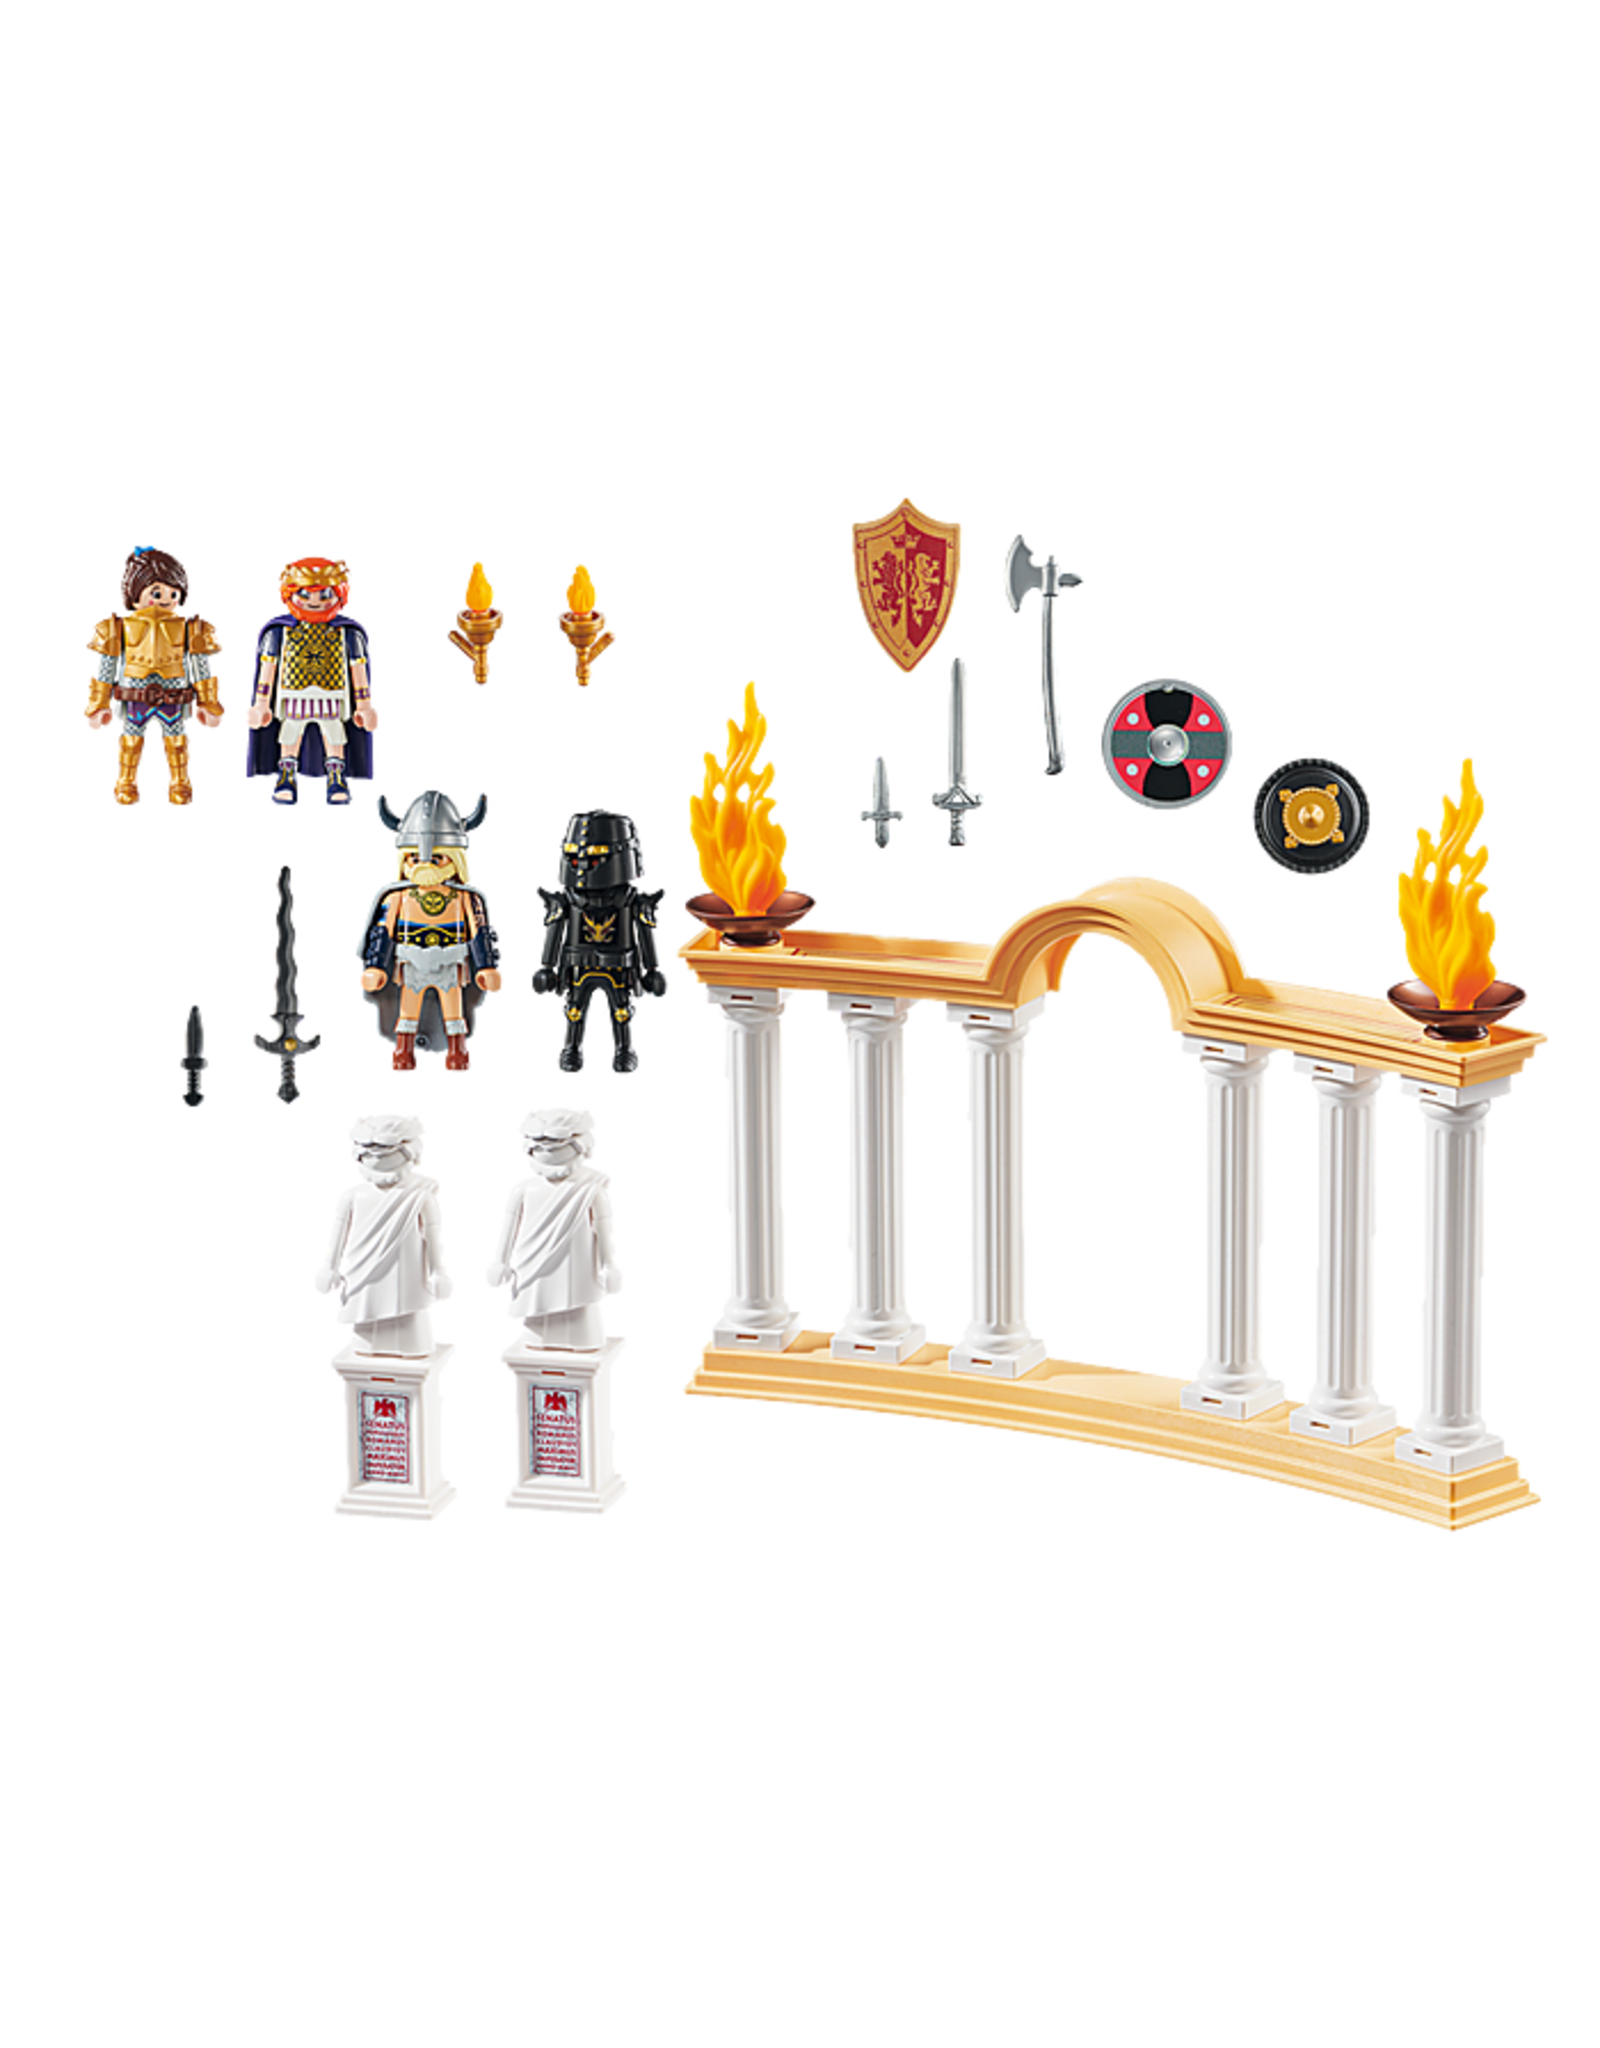 Playmobil PLAYMOBIL THE MOVIE: Emperor Maximus in the Colosseum